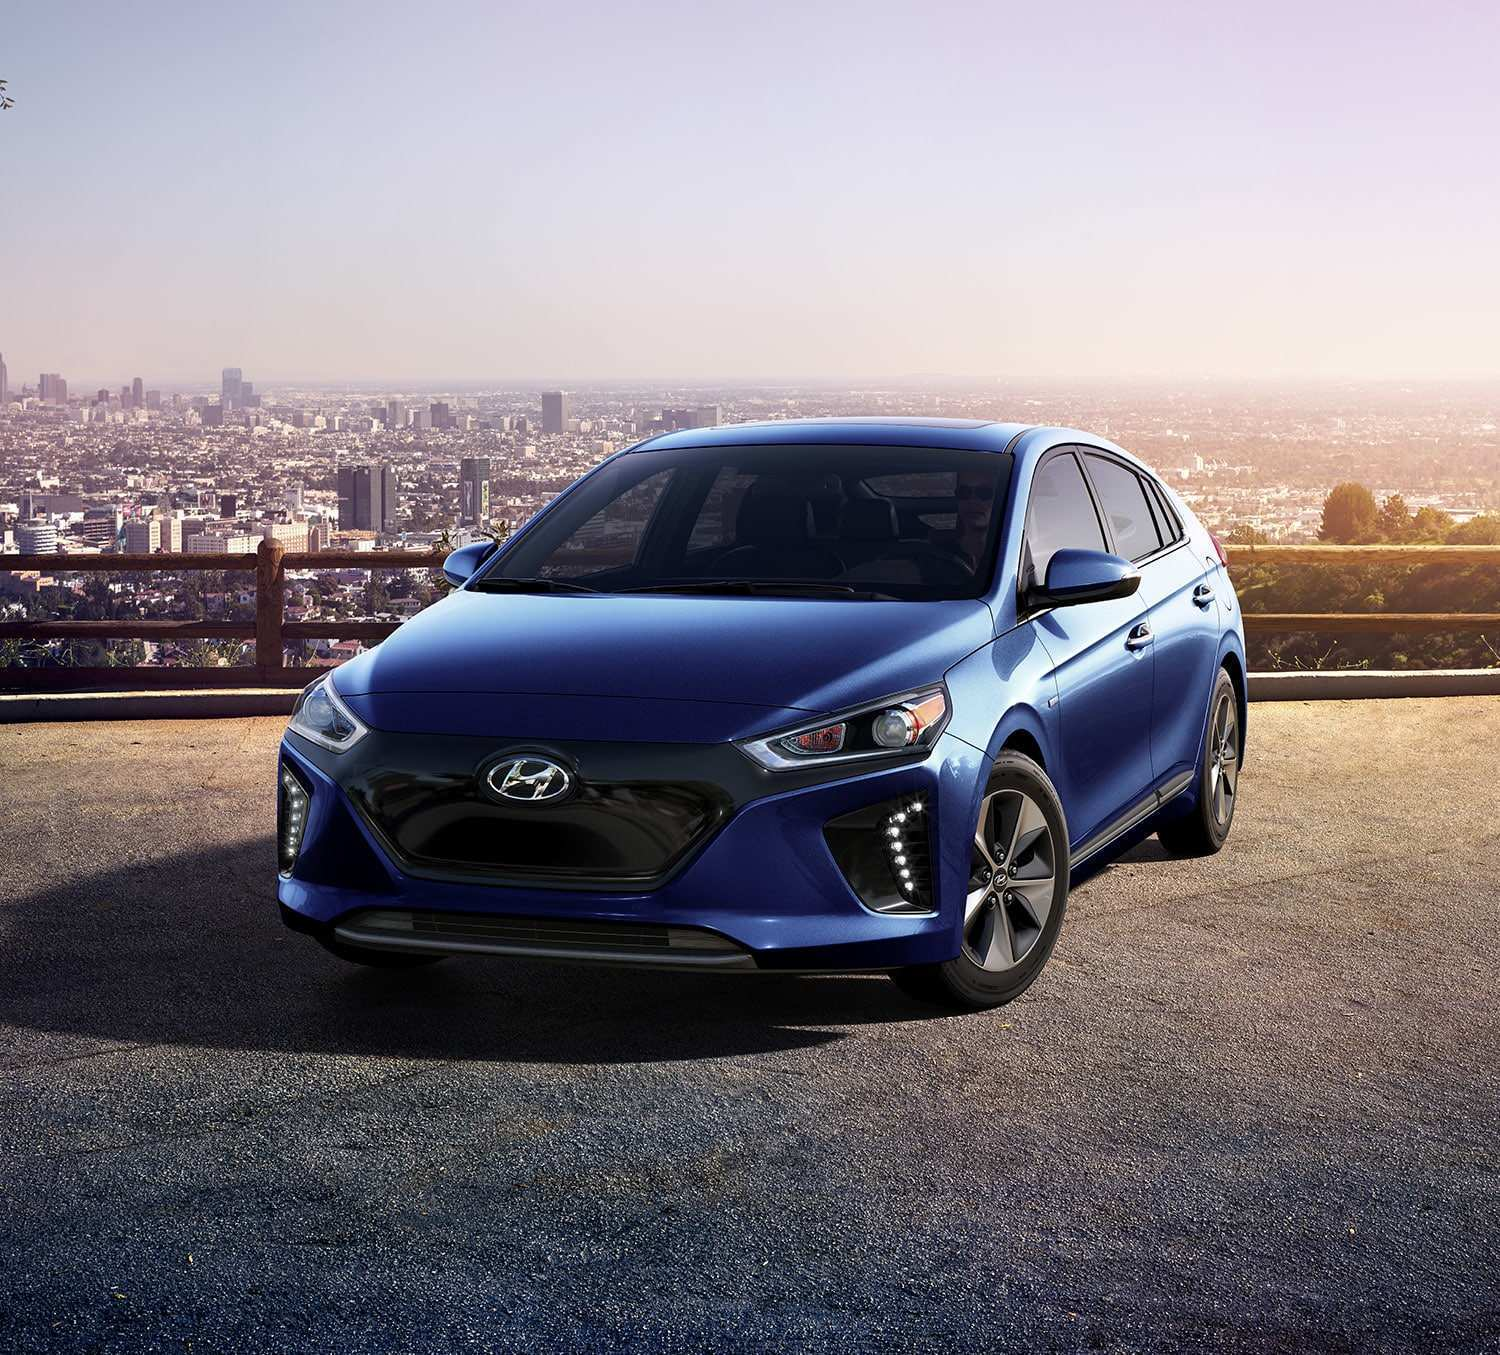 36 Best Review 2019 Hyundai Ioniq Electric Exterior with 2019 Hyundai Ioniq Electric